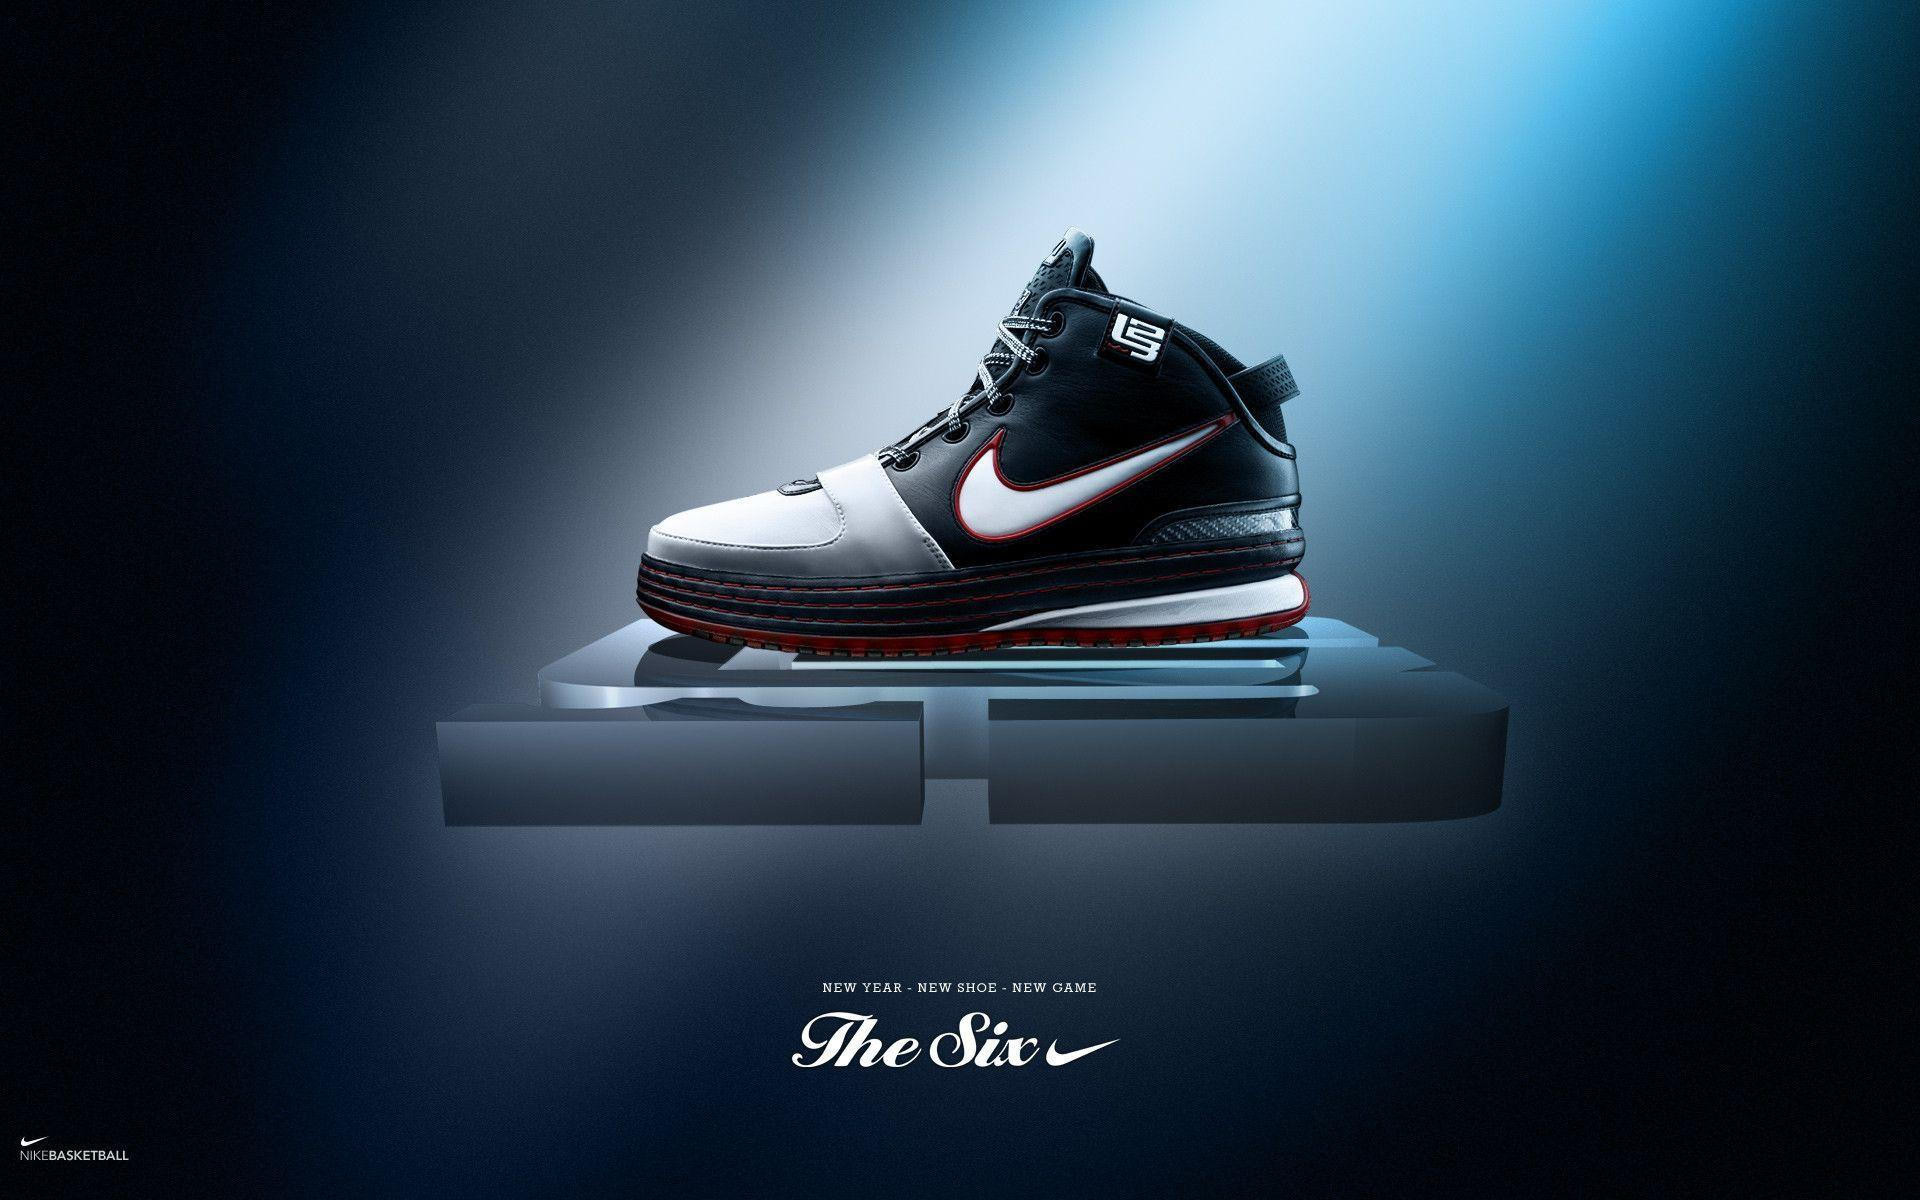 Wallpaper | NIKE LEBRON - LeBron James - News | Shoes | Basketball